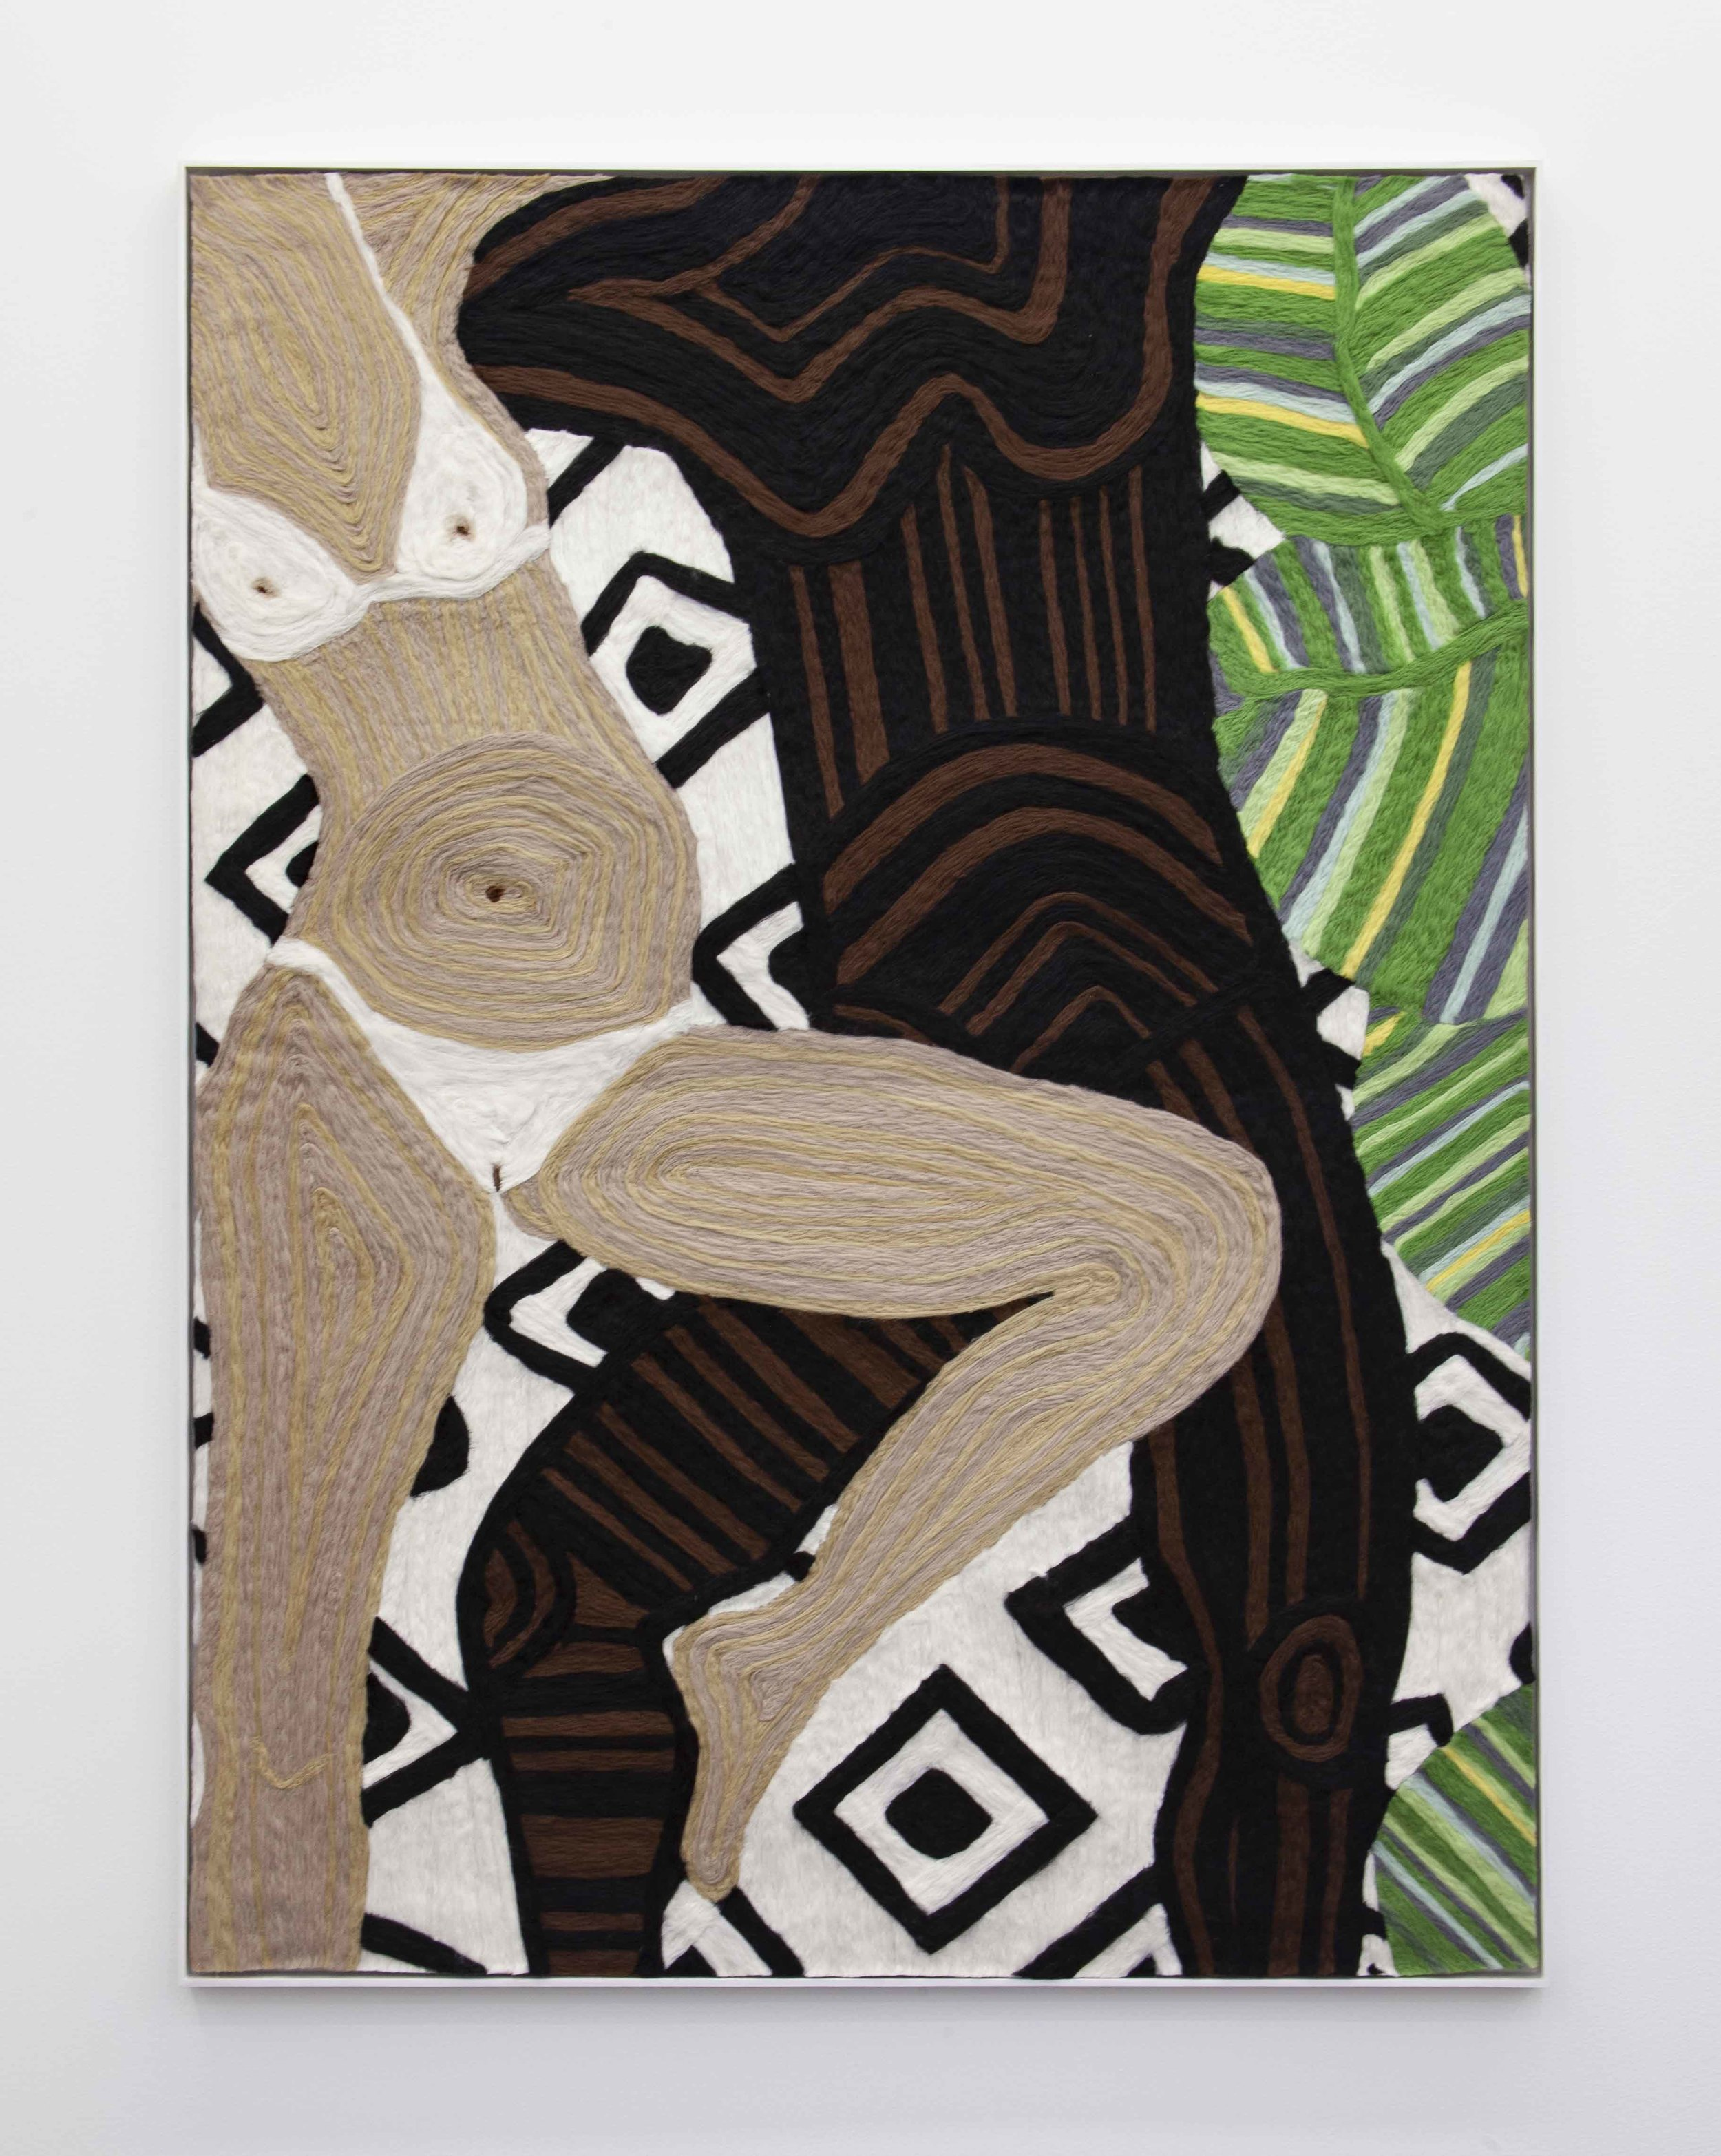 """Cheryl Pope """"Woman and Man Reclining on Striped Mat XII"""" (2019). Needle-punched wool roving on cashmere, 65 in x 48 3/4 in. Courtesy of the artist and Monique Meloche Gallery, Chicago."""